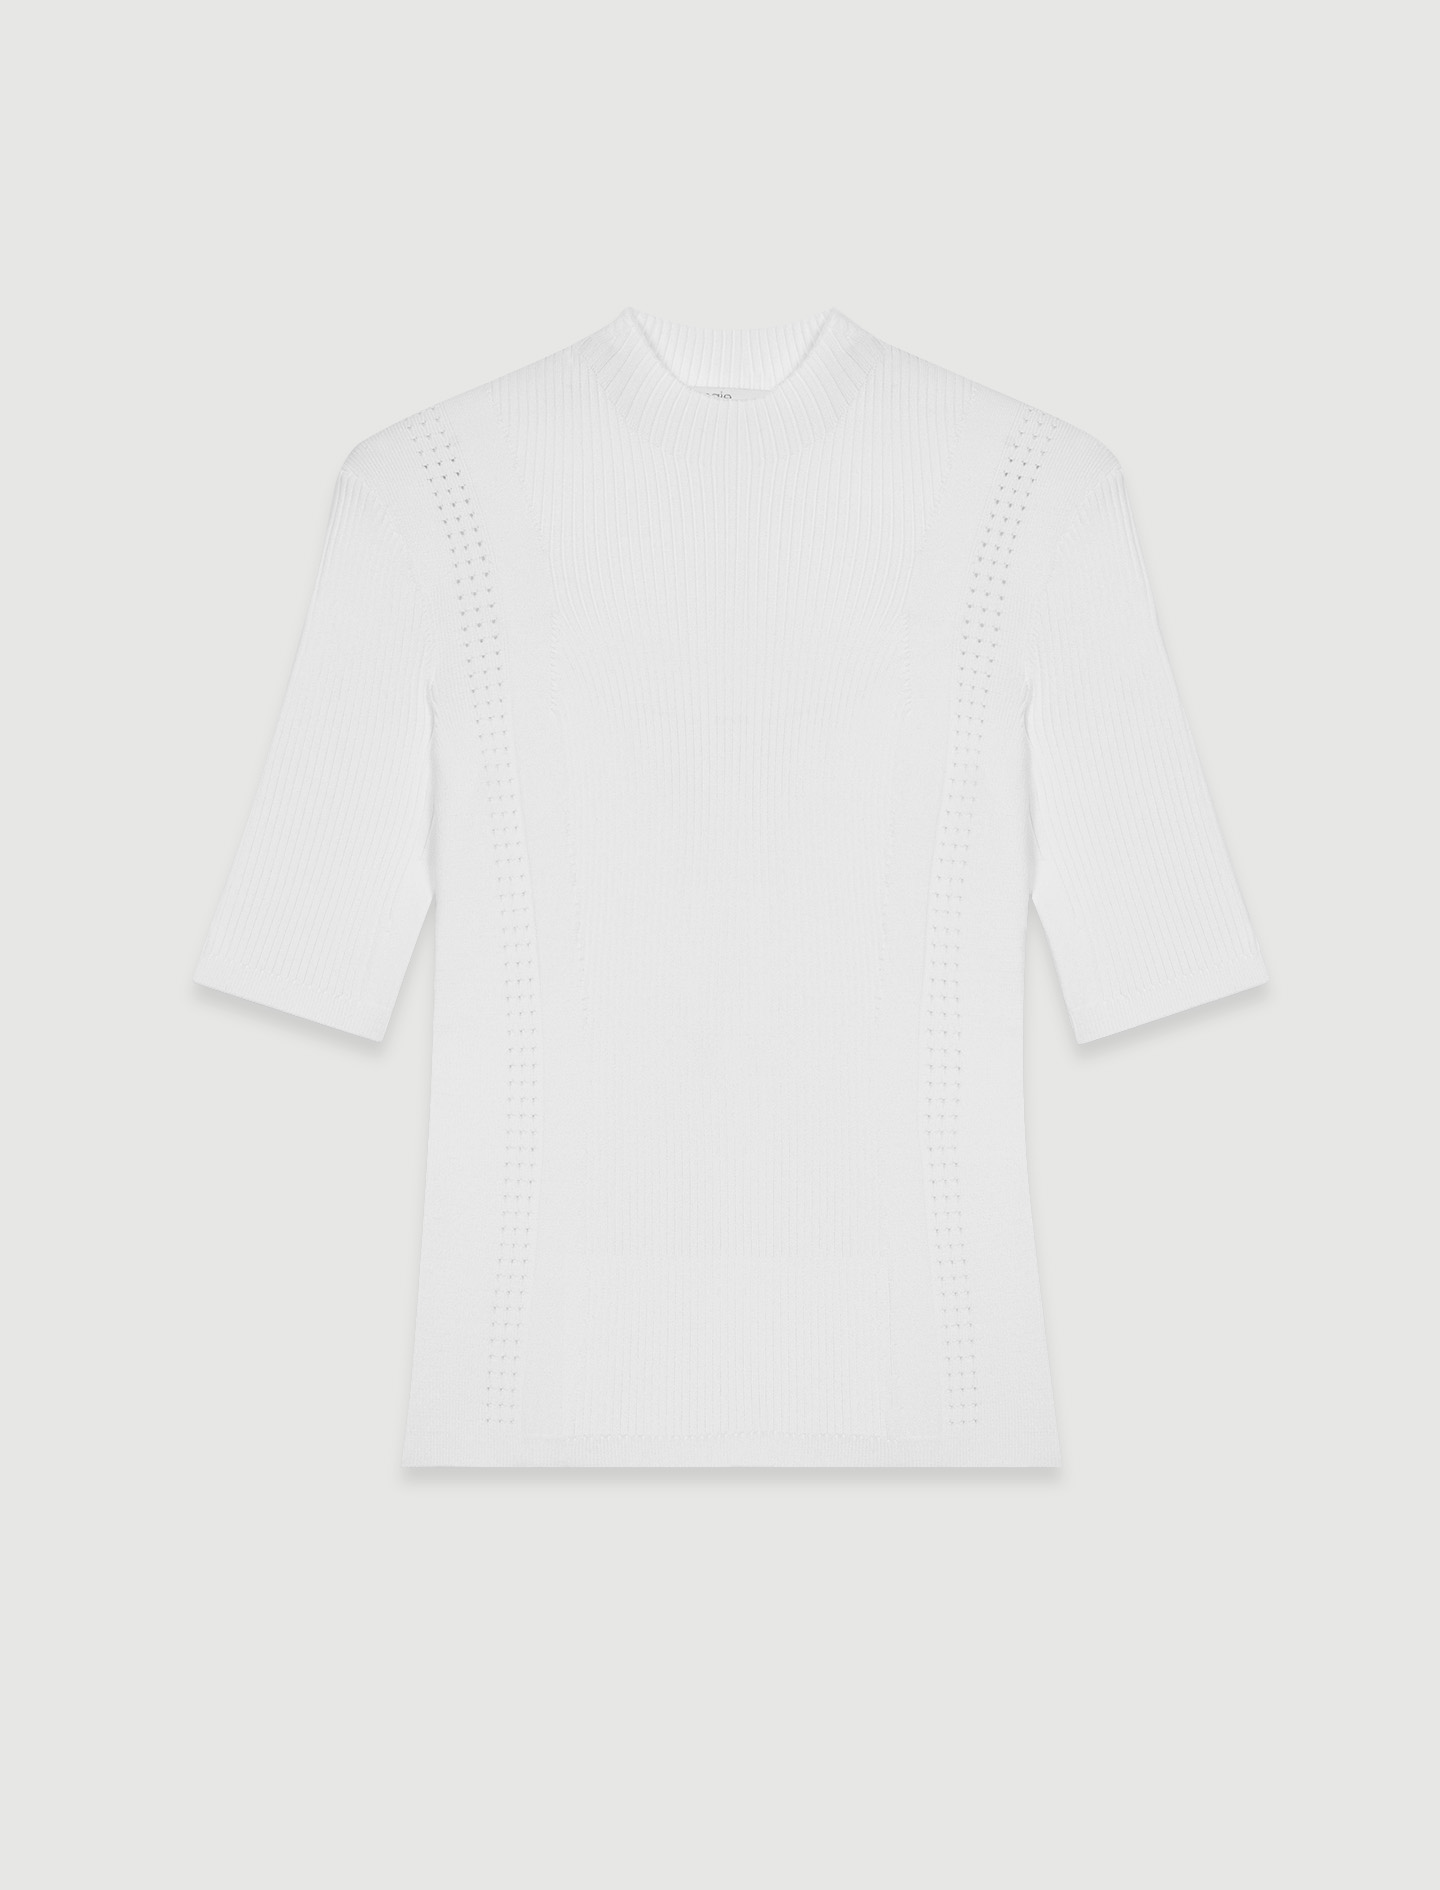 Short sleeve white ribbed top by maje paris